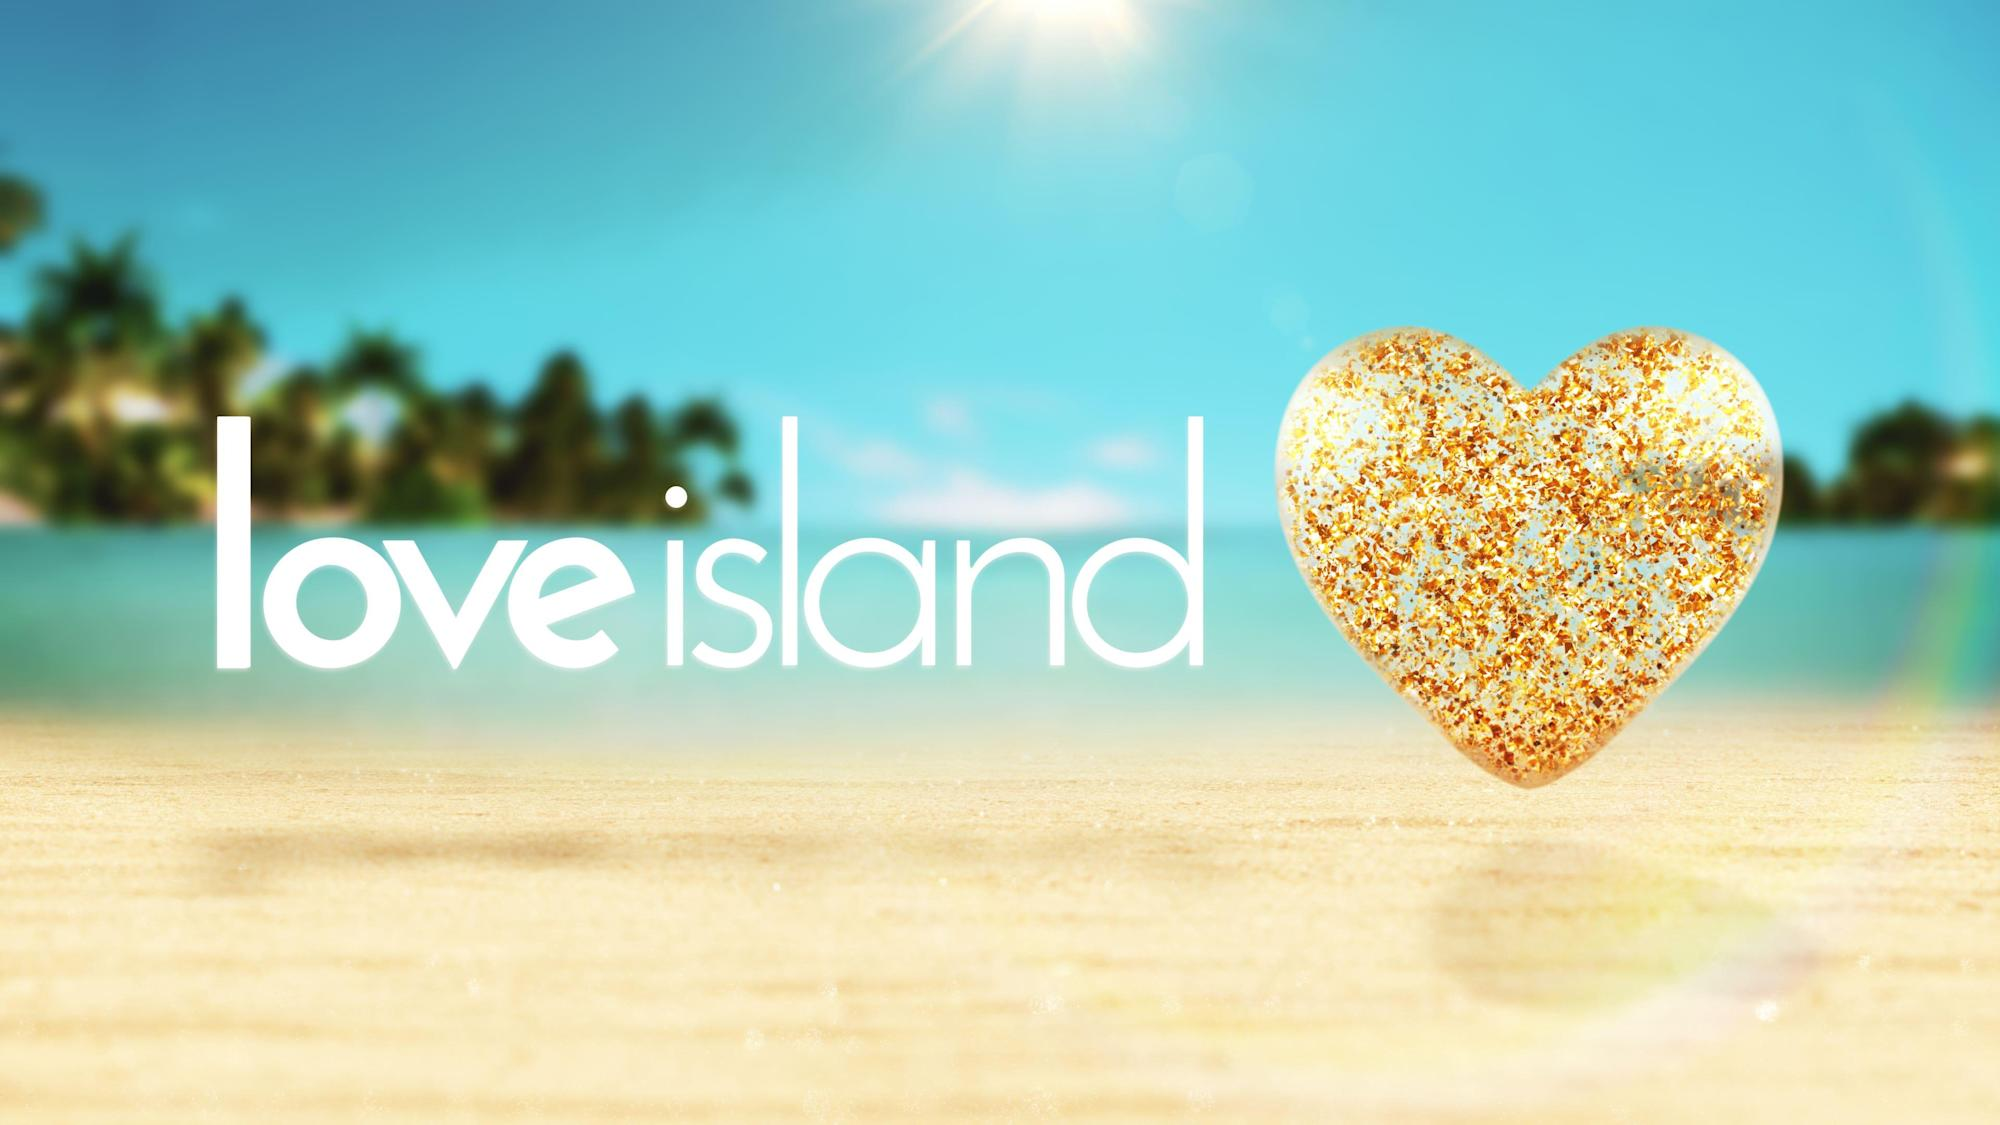 three-new-contestants-enter-love-island-following-double-elimination